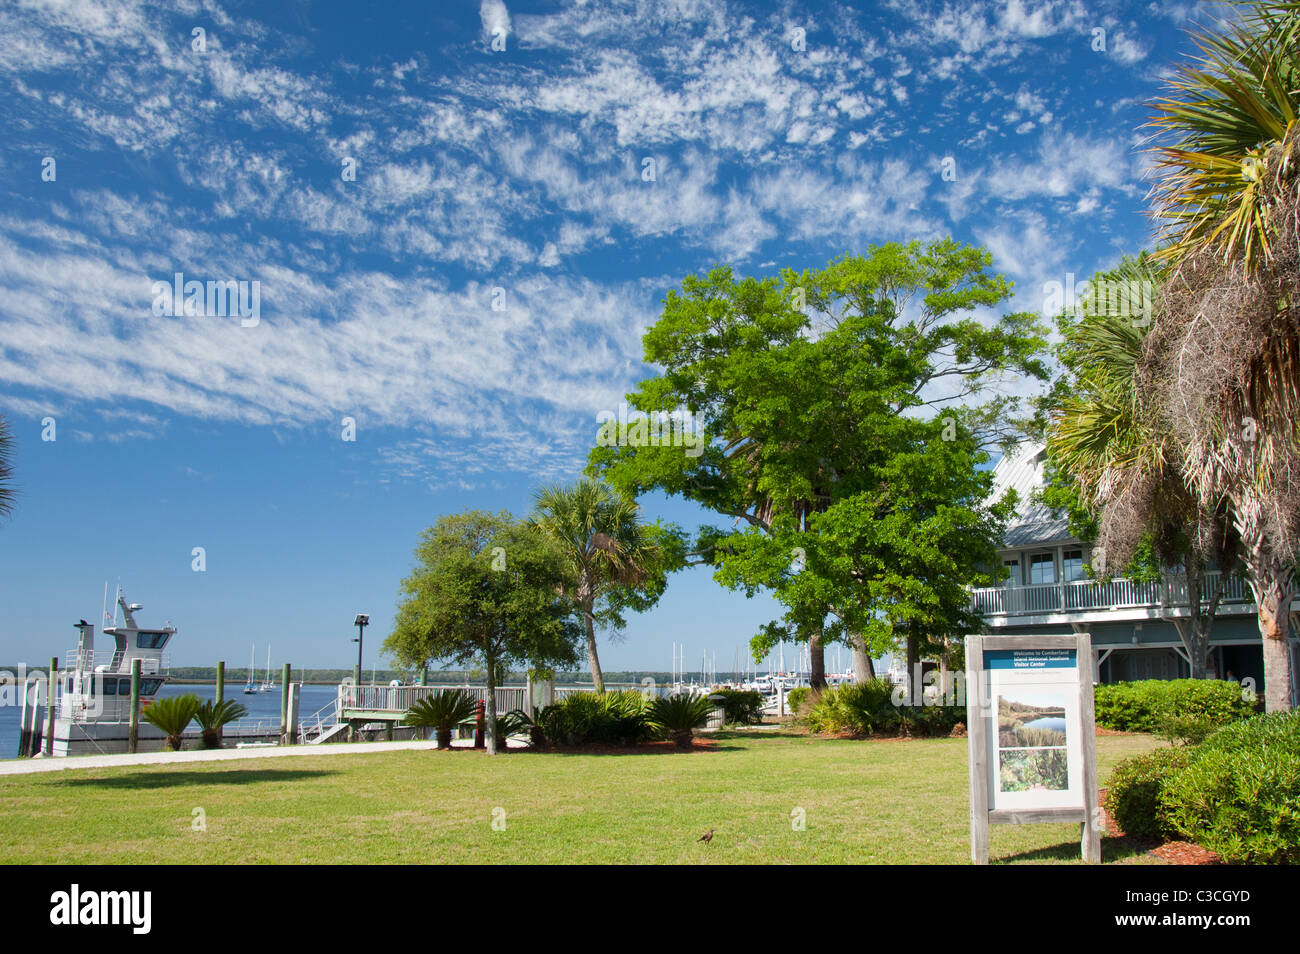 Georgia, St. Marys. Cumberland Island National Seashore Visitor's Center. Stock Photo